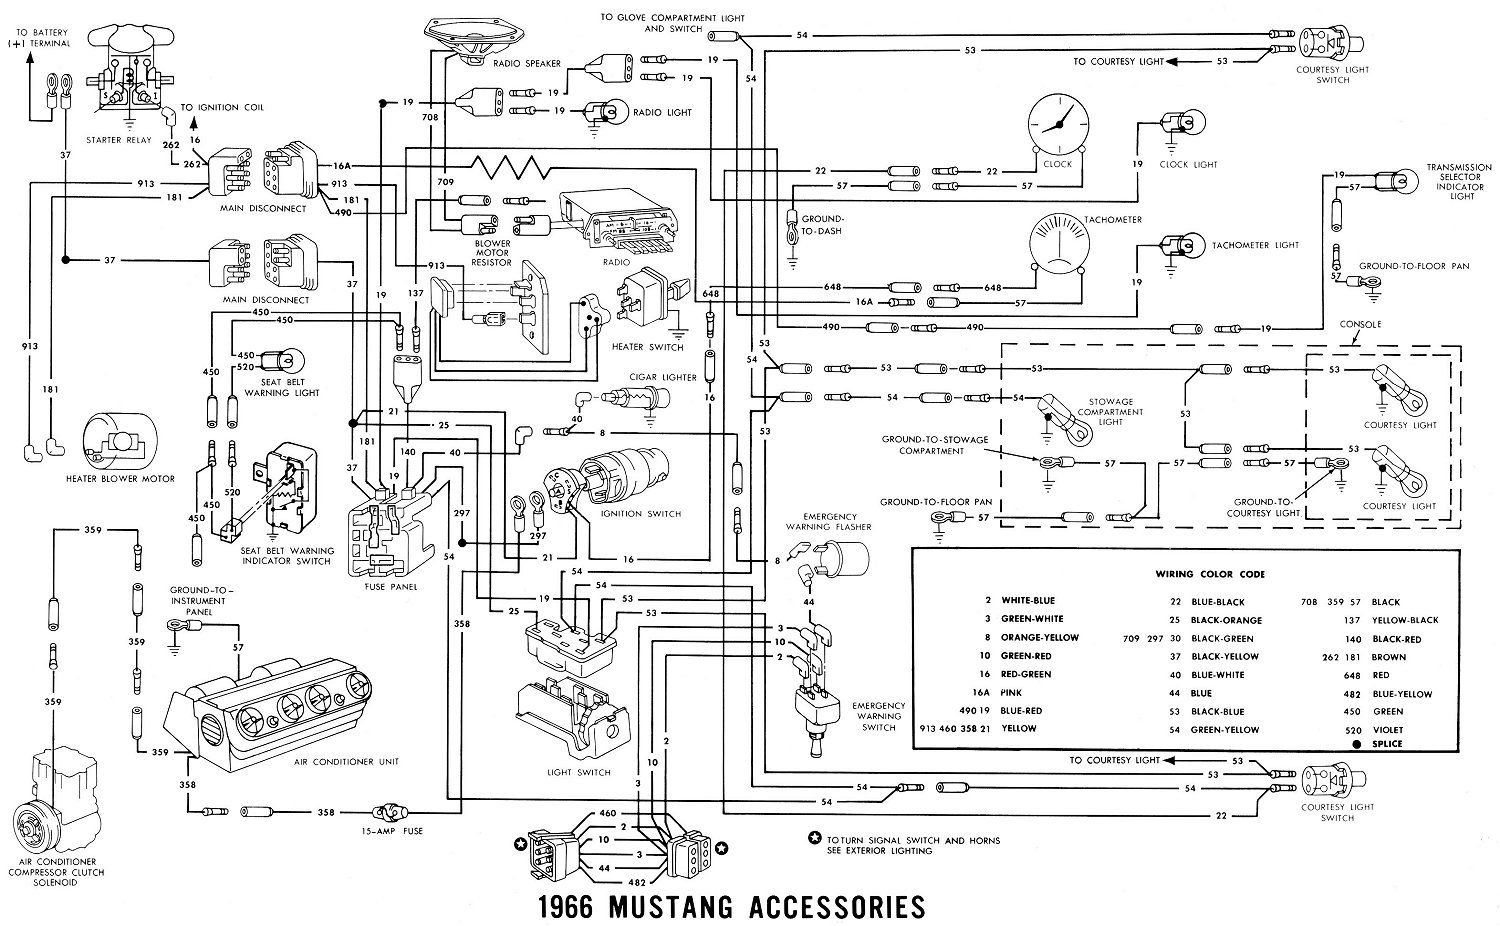 66acces1 63 fairlane wiper motor wiring hot rod forum hotrodders wiring diagram for 1966 ford fairlane at gsmx.co